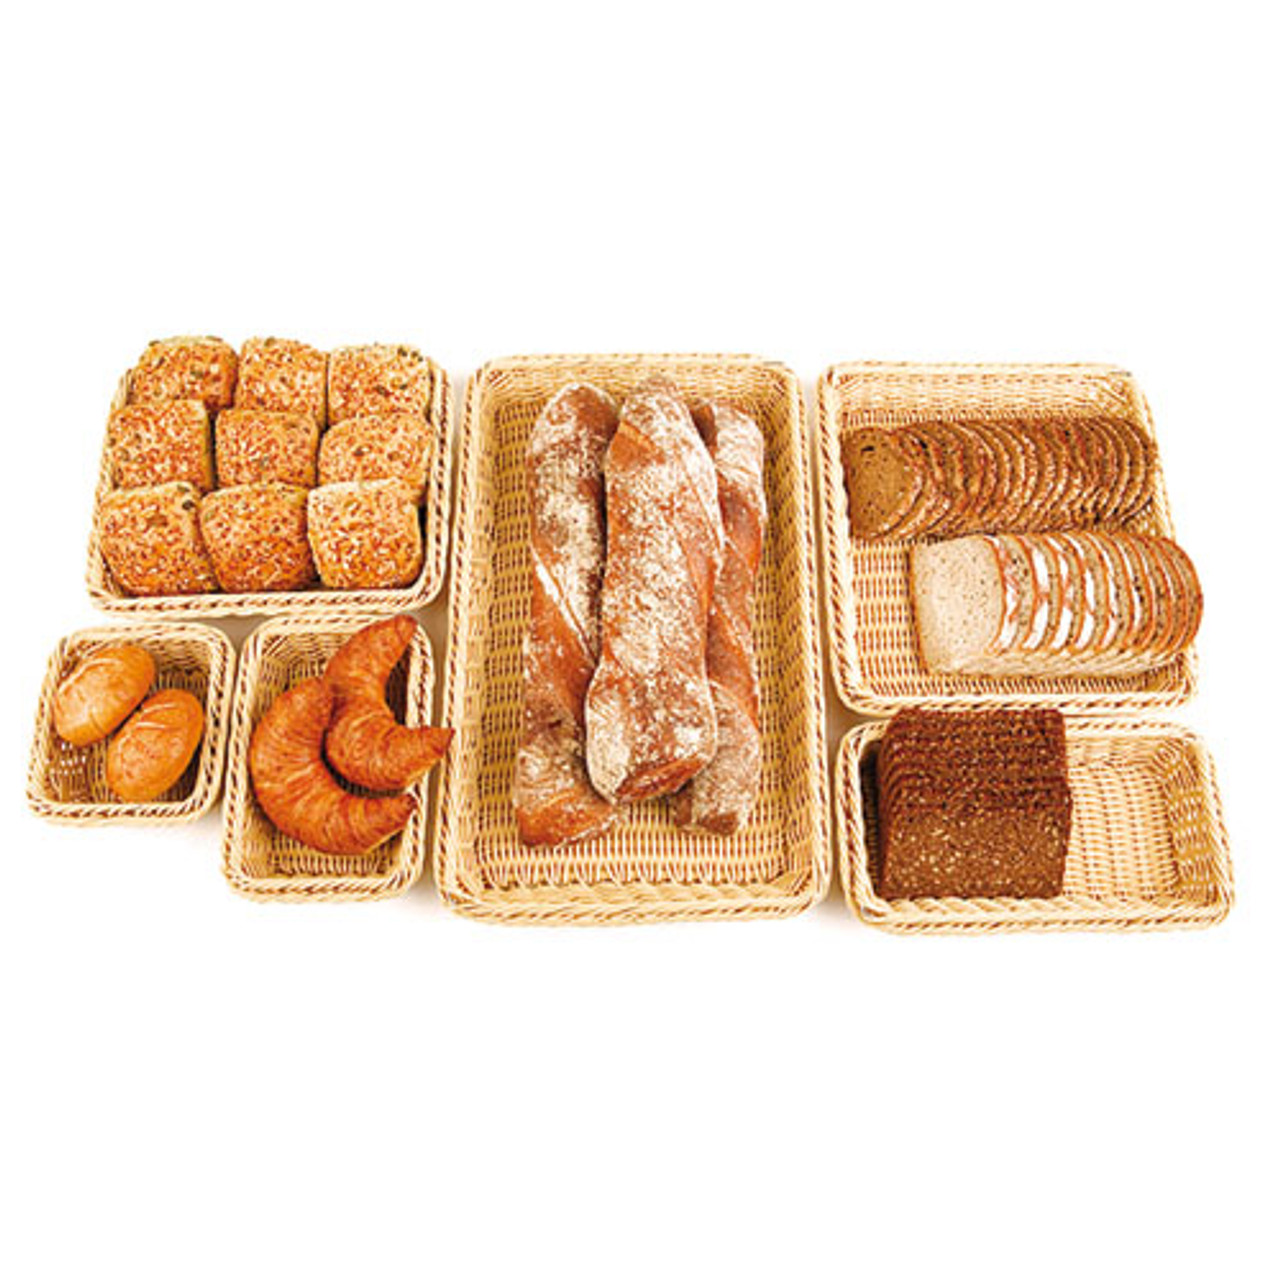 4 High Polyrattan Bread Basket - (1/3 ) , L 12.75 x W 7.125 x H 4